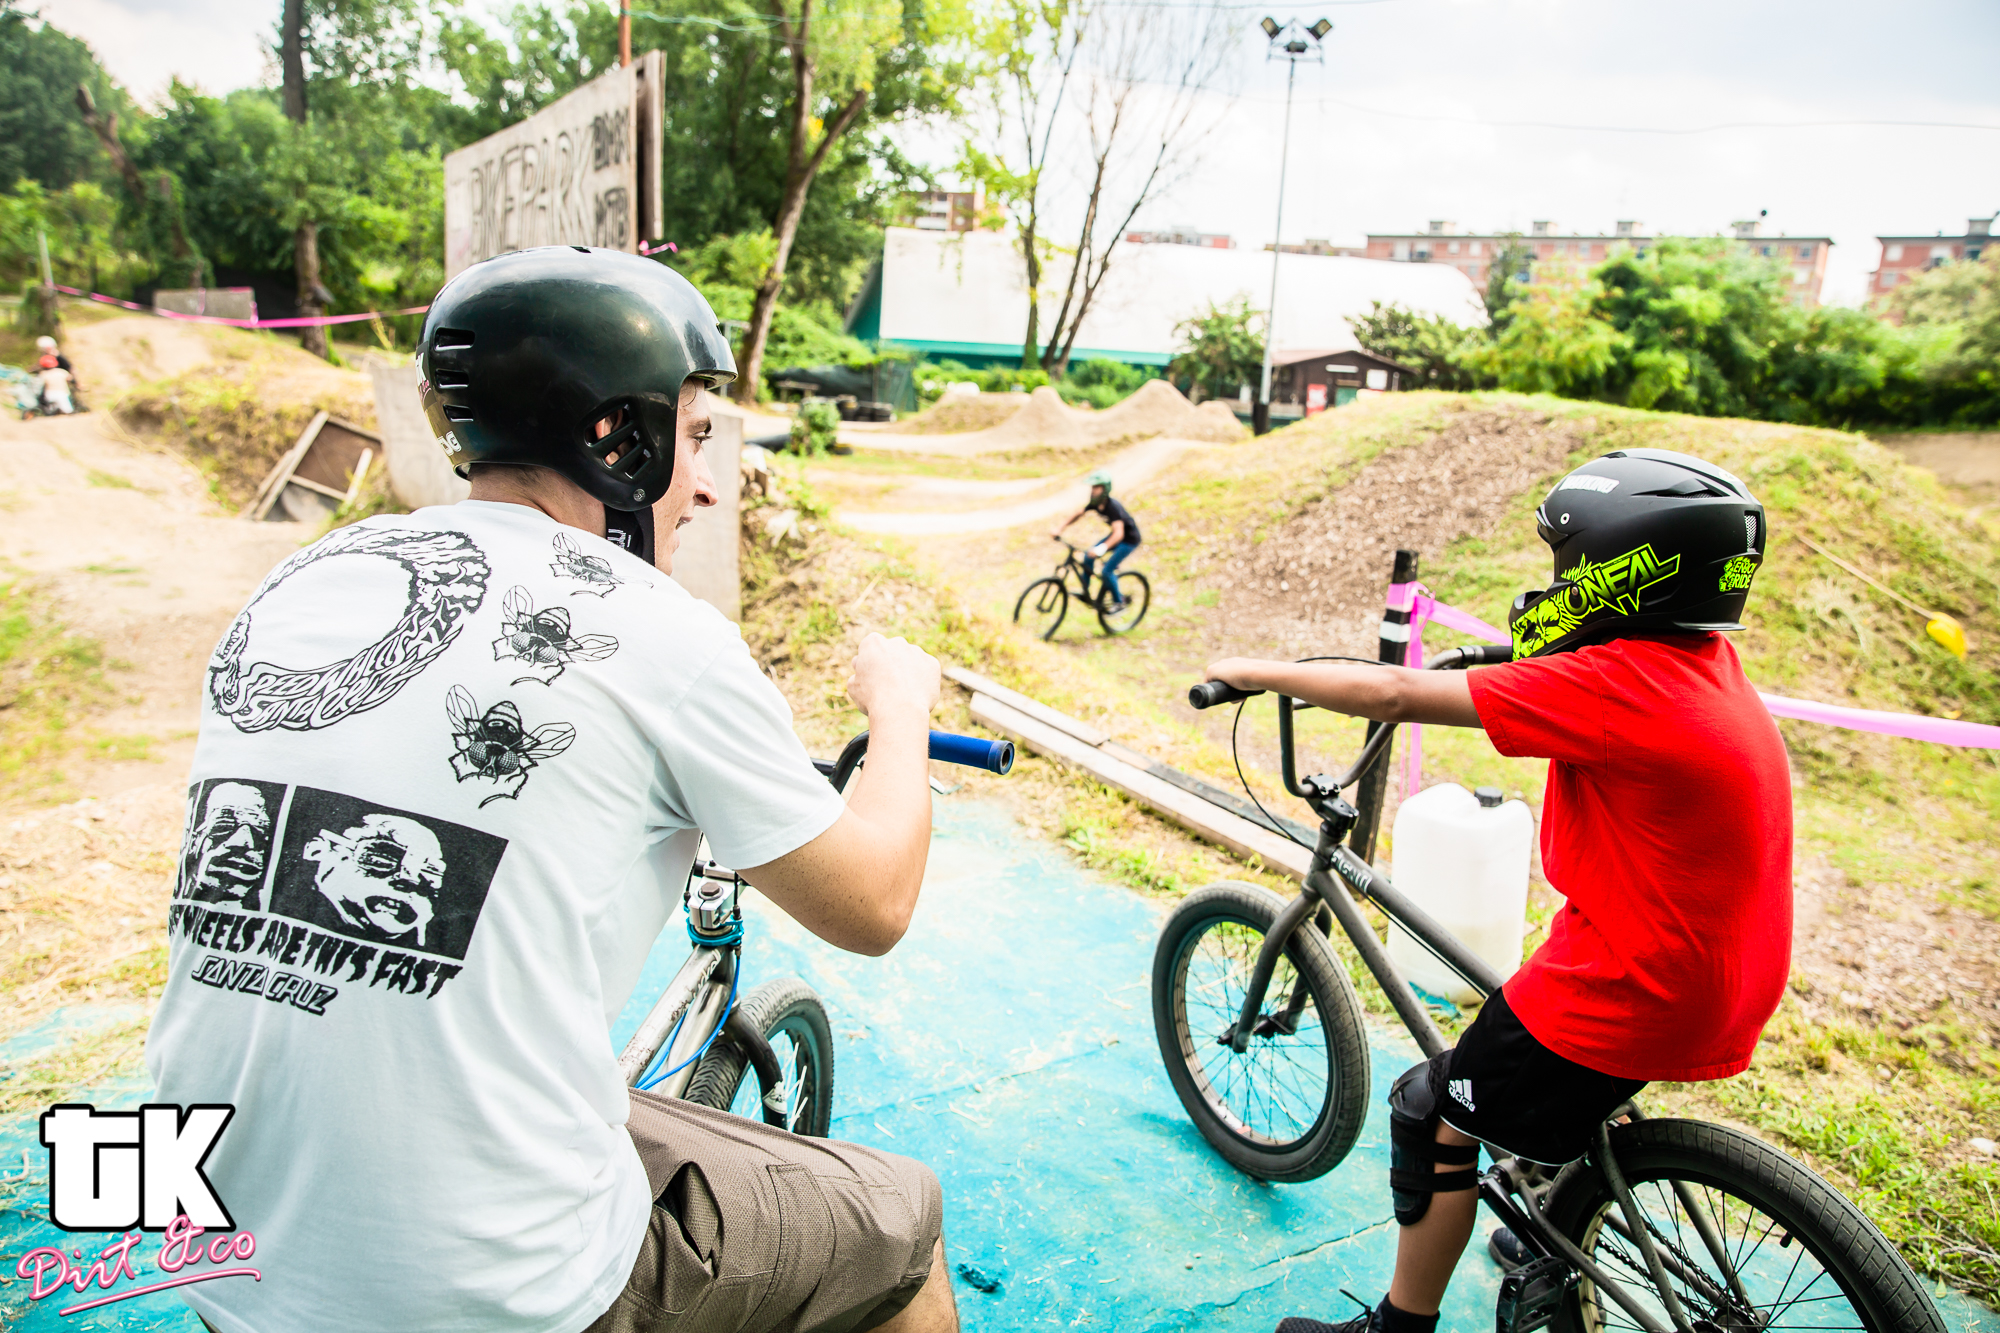 corso di bmx freestyle, l'istruttore spiega come approcciare la pump track all'allievo del corso kids level 1